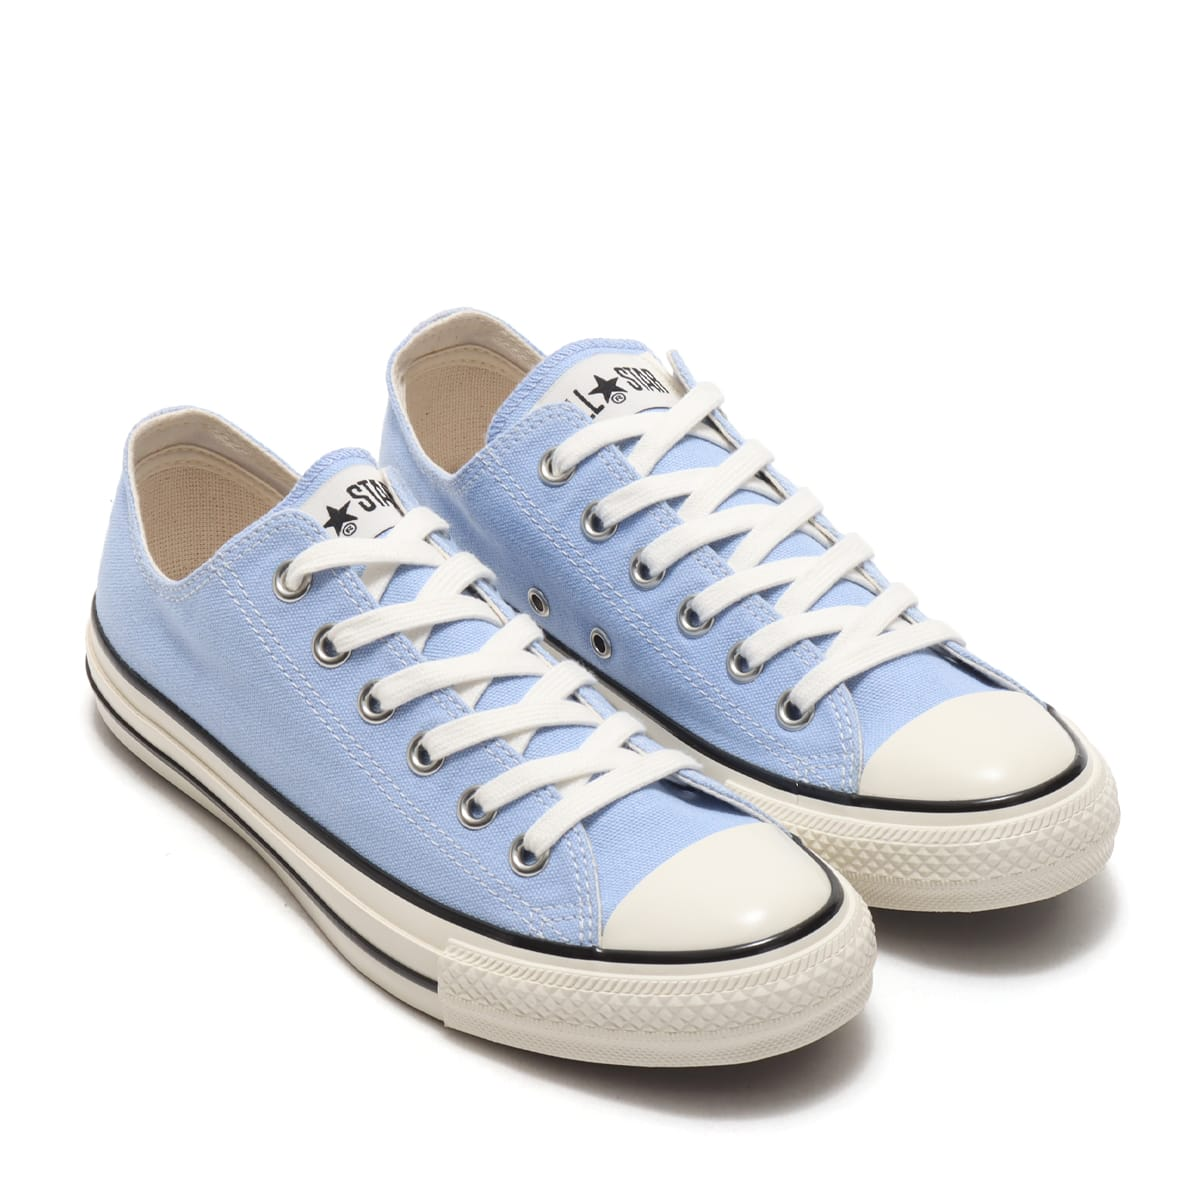 CONVERSE ALL STAR US COLORS OX BLUE 21SS-I_photo_large